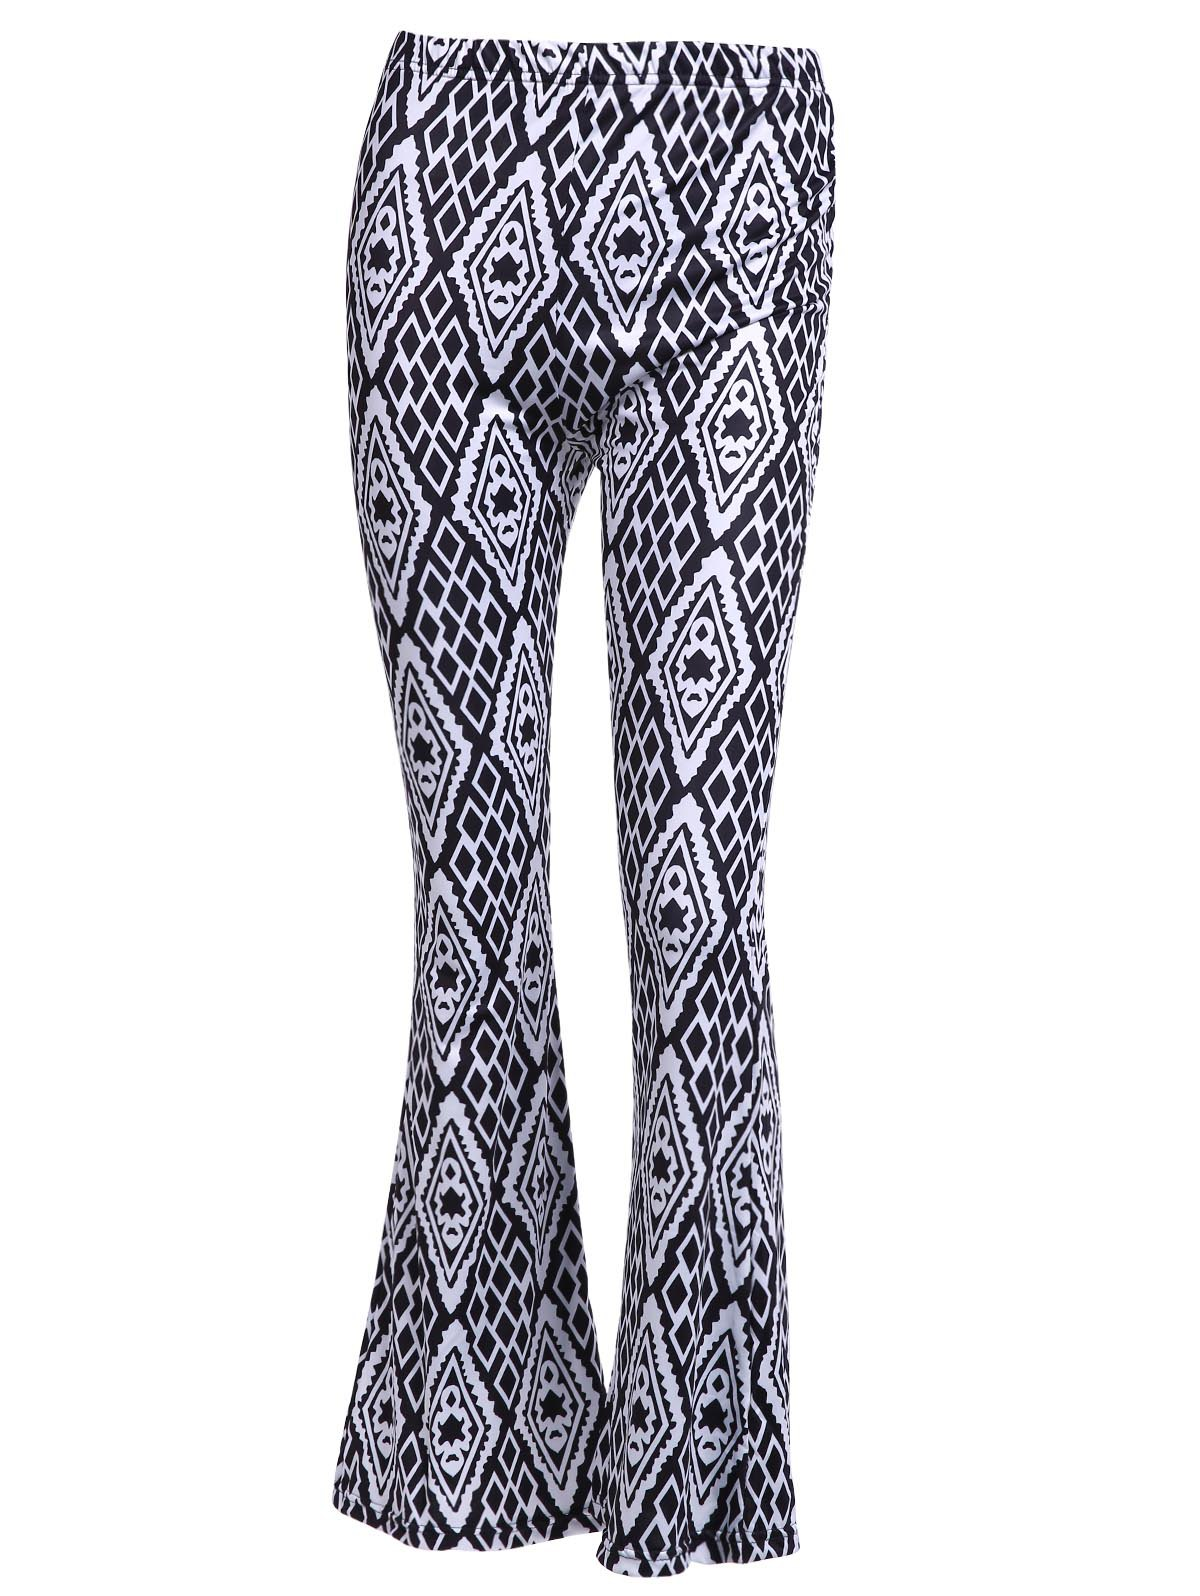 Vintage Women's High-Waisted Geometric Printed Pants - WHITE/BLACK M